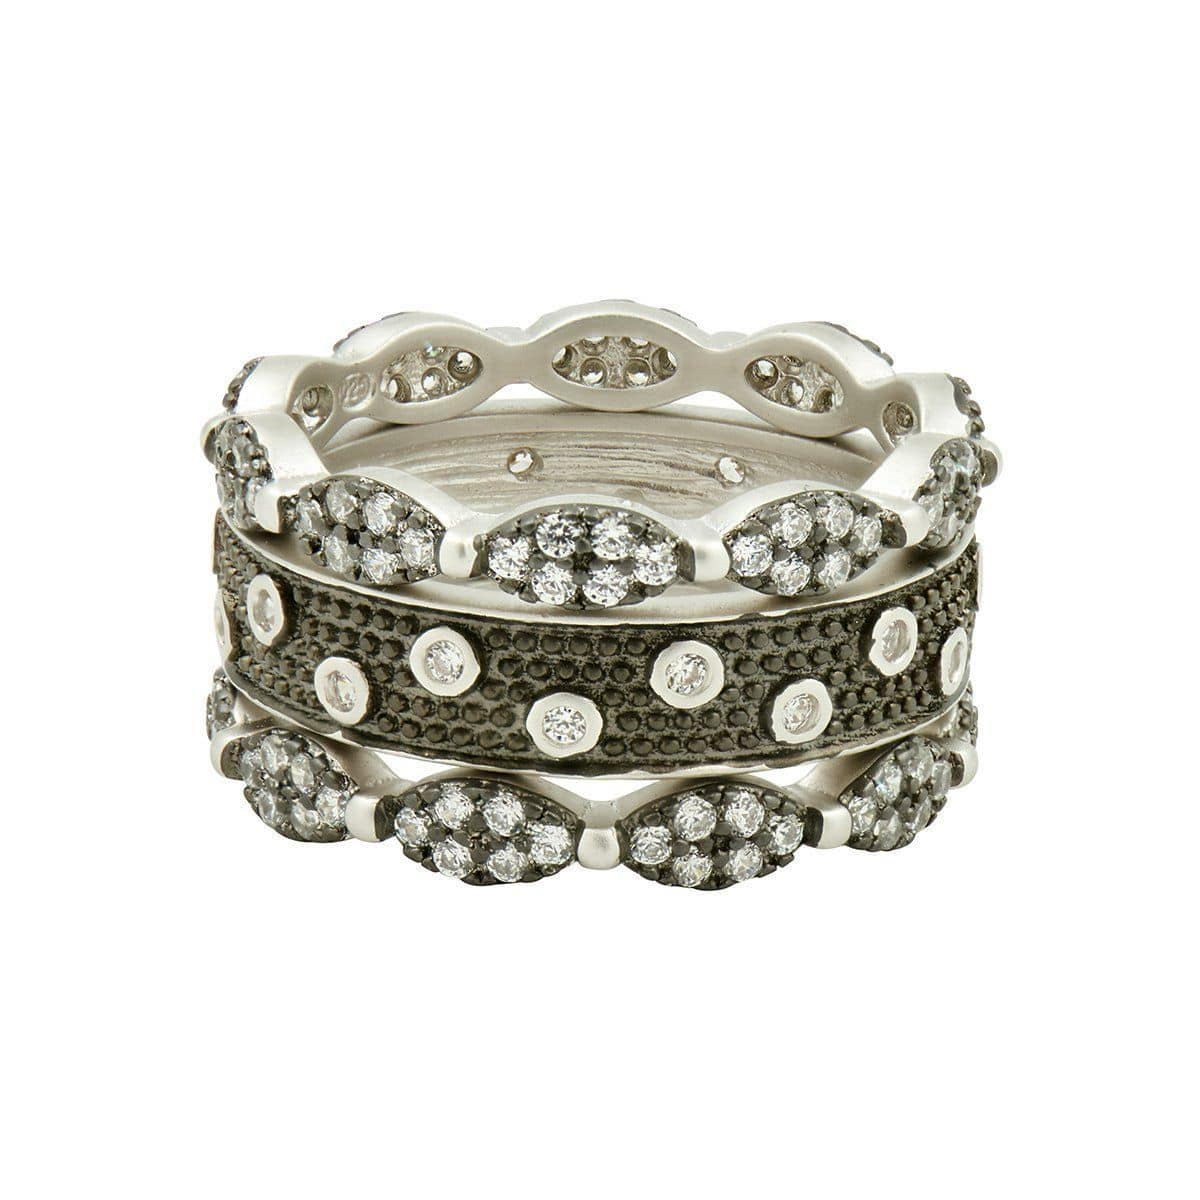 Industrial Finish 3-Stack Rings - IFPKZR04-Freida Rothman-Renee Taylor Gallery